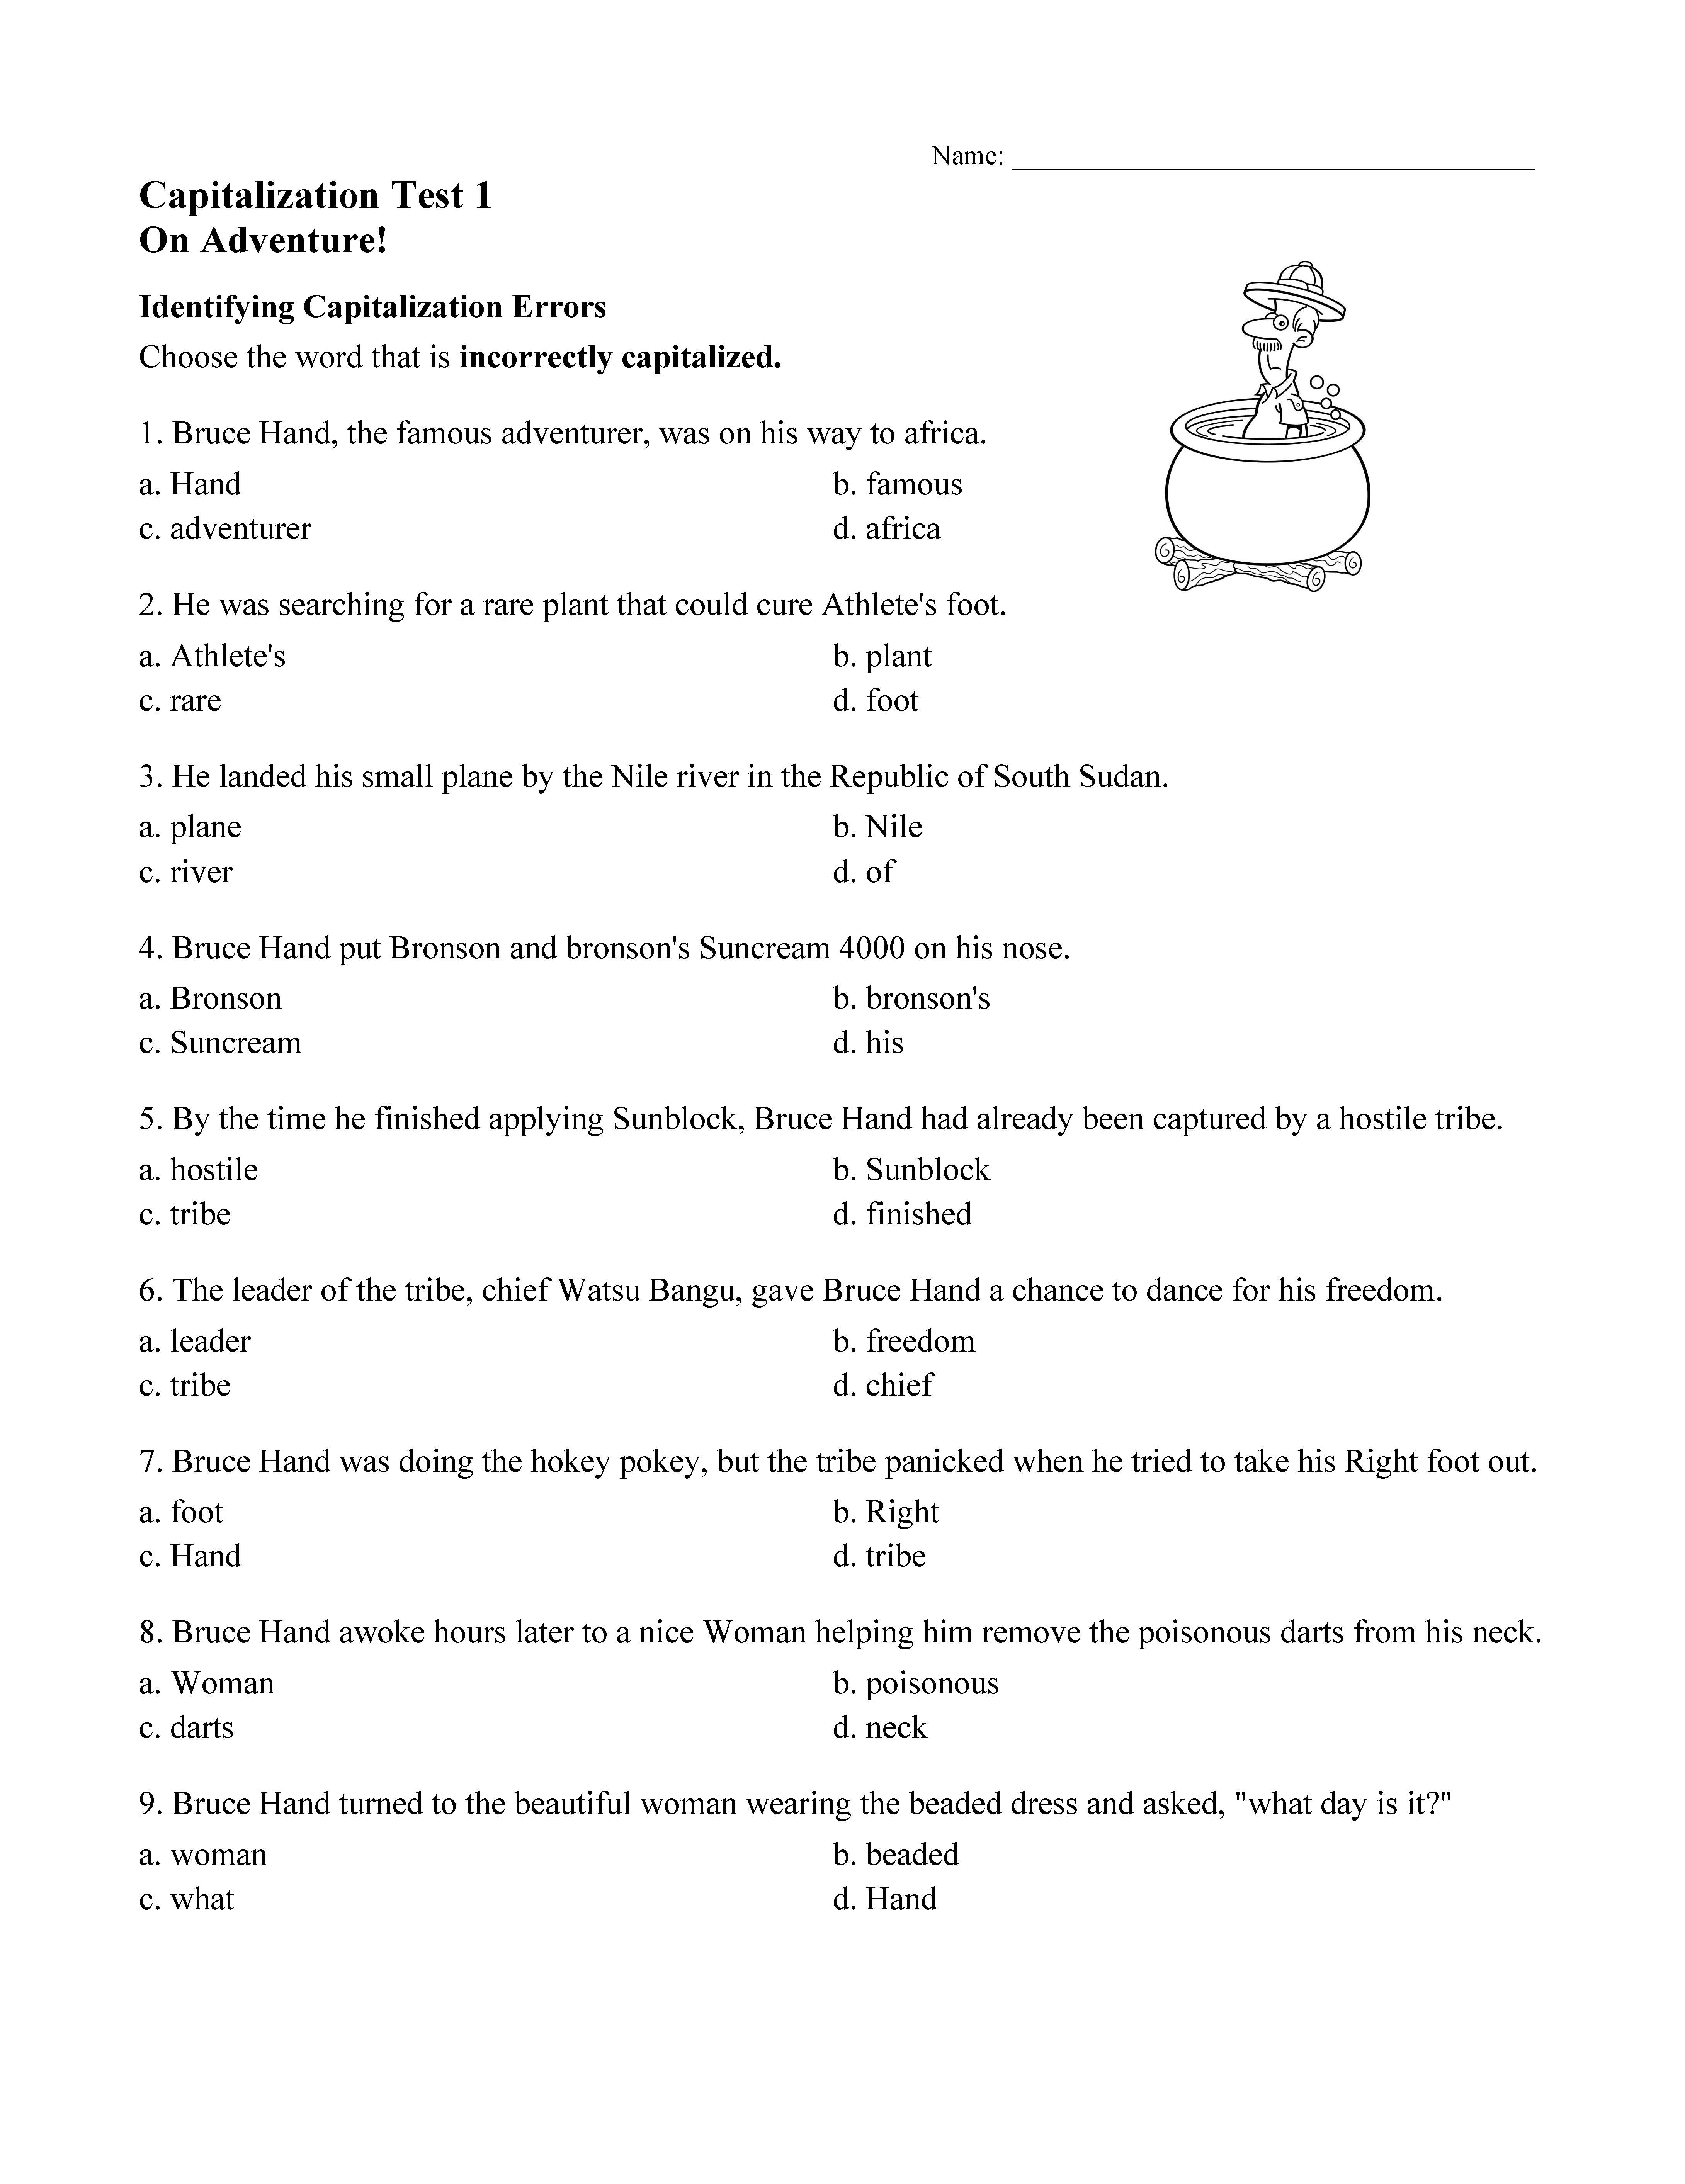 E Reading Worksheets Test Printable Worksheets And Activities For Teachers Parents Tutors And Homeschool Families Theme, text structure, genre, irony, and more. thebackpackingtales com